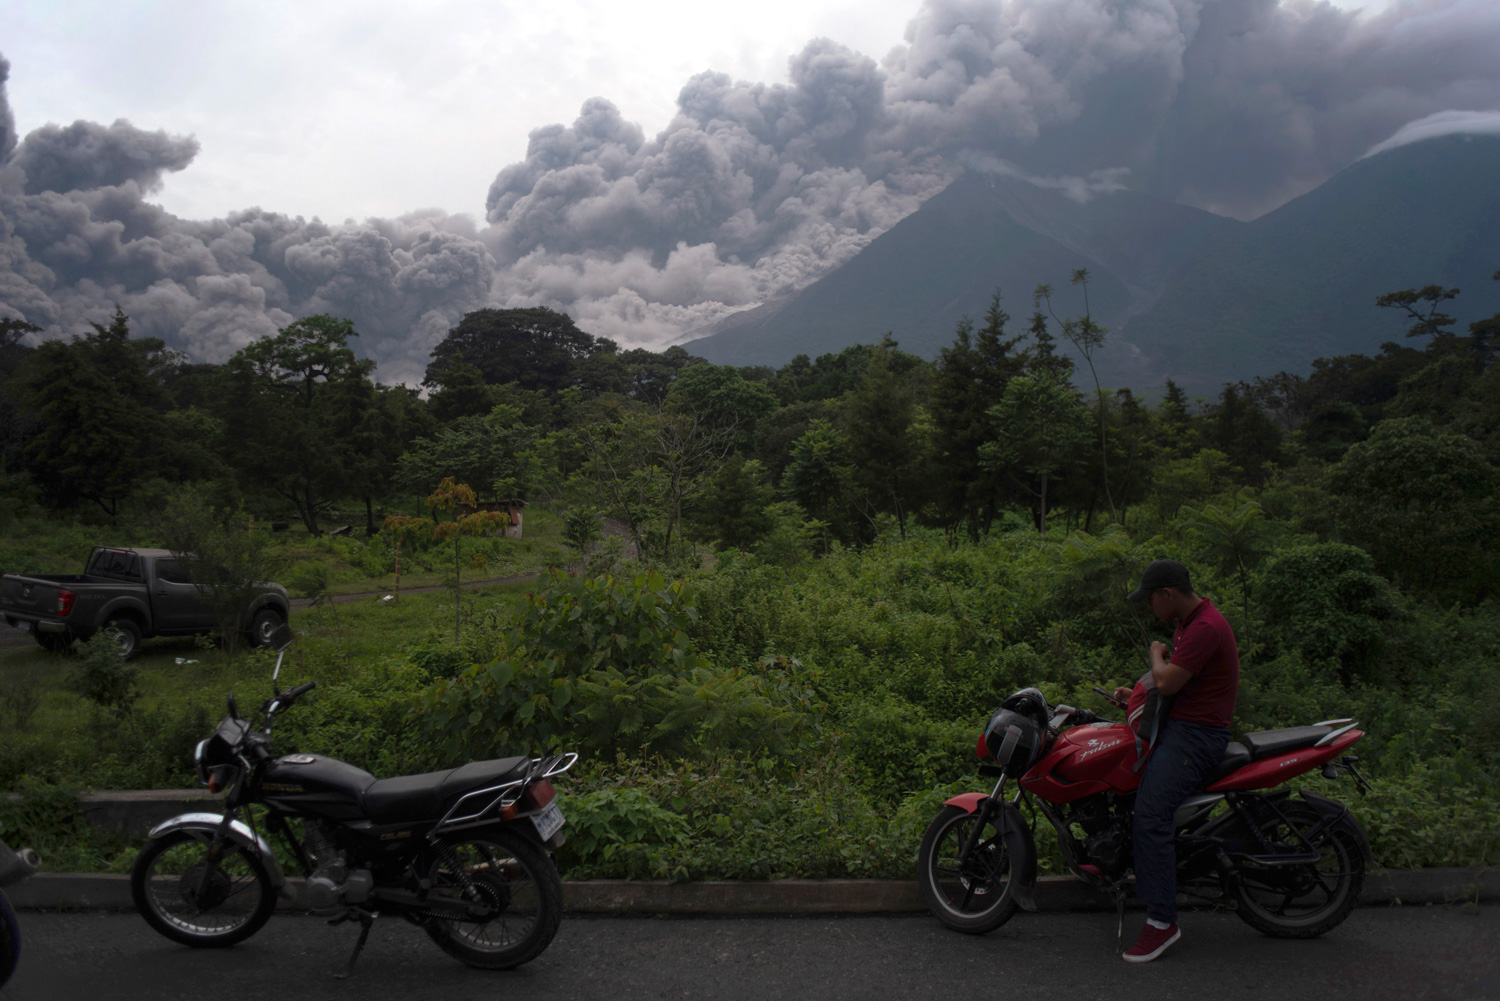 "<div class=""meta image-caption""><div class=""origin-logo origin-image none""><span>none</span></div><span class=""caption-text"">Volcan de Fuego, or Volcano of Fire, blows outs a thick cloud of ash, as seen from Alotenango, Guatemala, Sunday, June 3, 2018. (Santiago Billy/AP Photo)</span></div>"